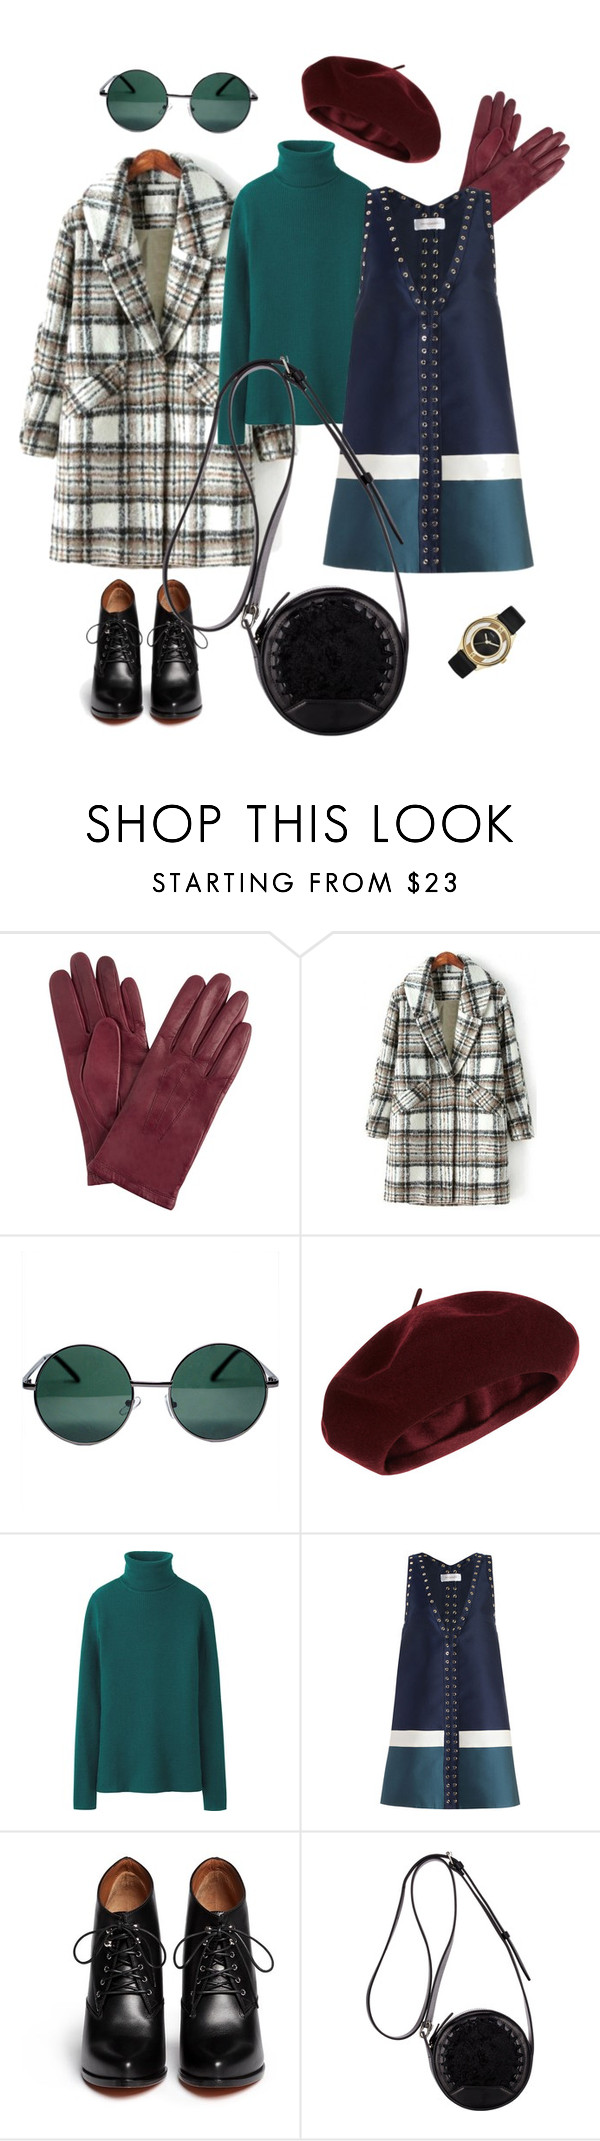 """beret, 60-е"" by enre on Polyvore featuring мода, John Lewis, YHF, Accessorize, Uniqlo, Zimmermann, Givenchy, 3.1 Phillip Lim и Marc by Marc Jacobs"